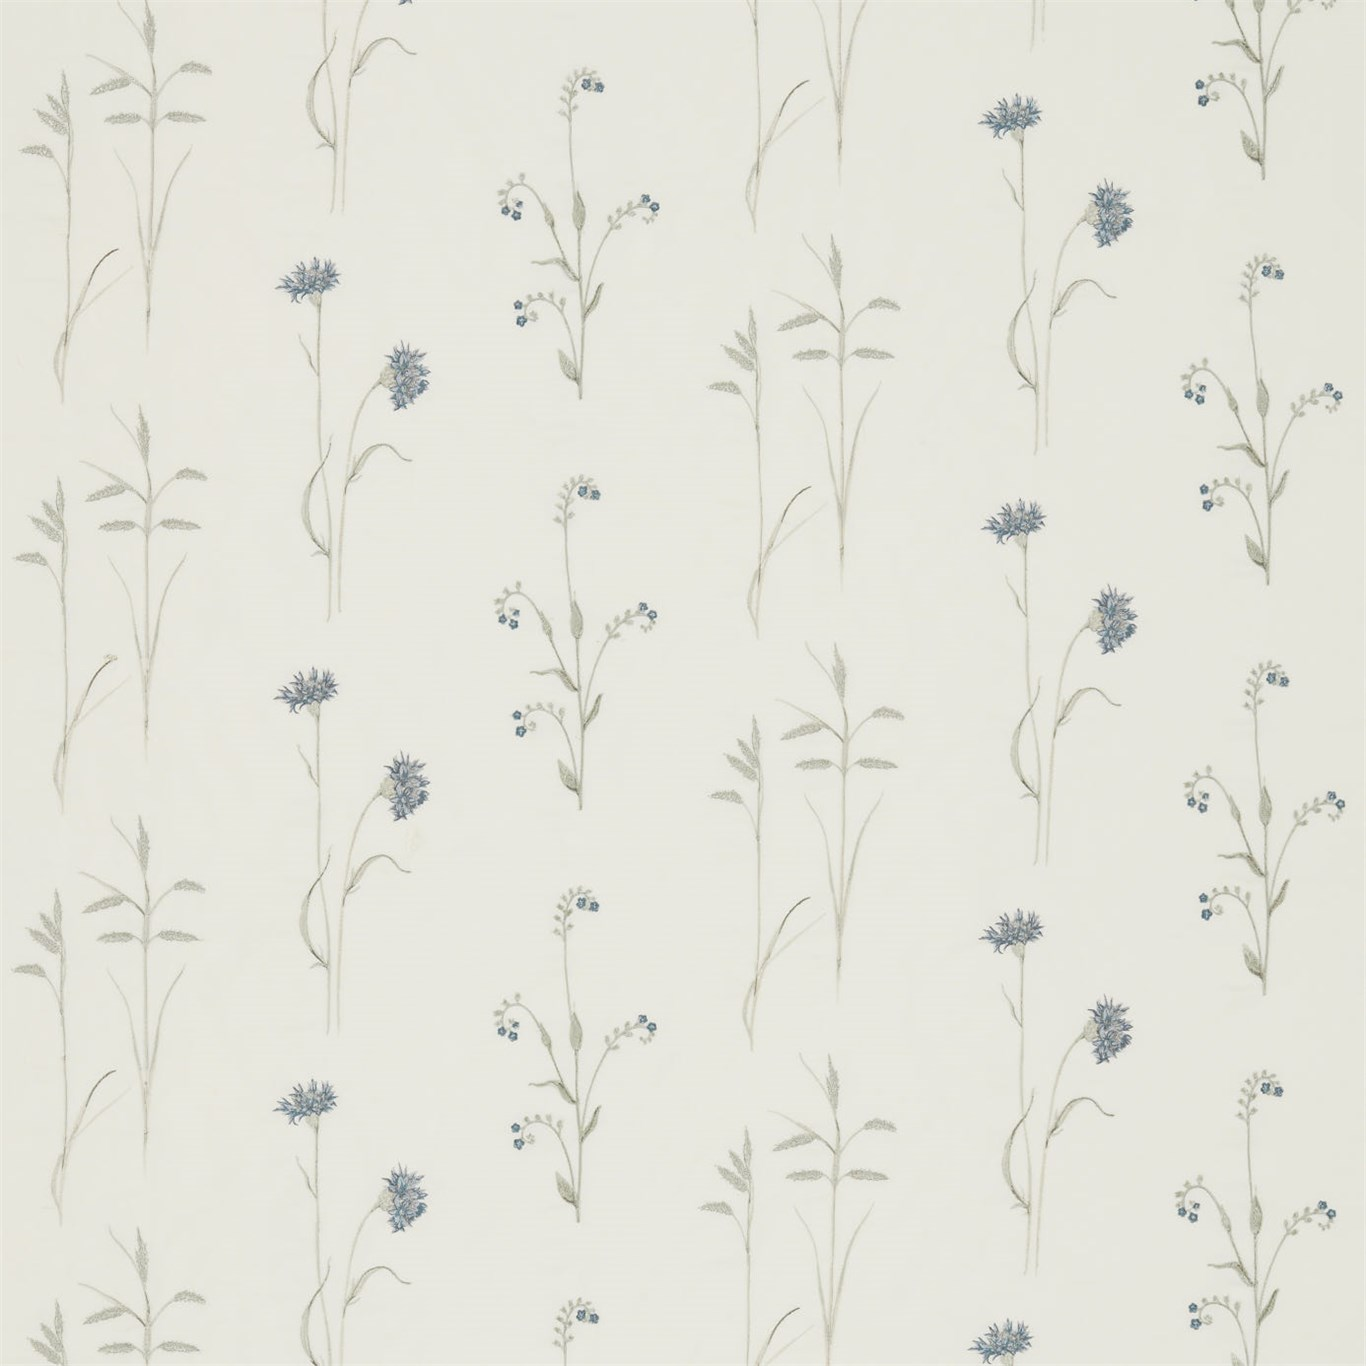 MEADOW GRASSES COBALT